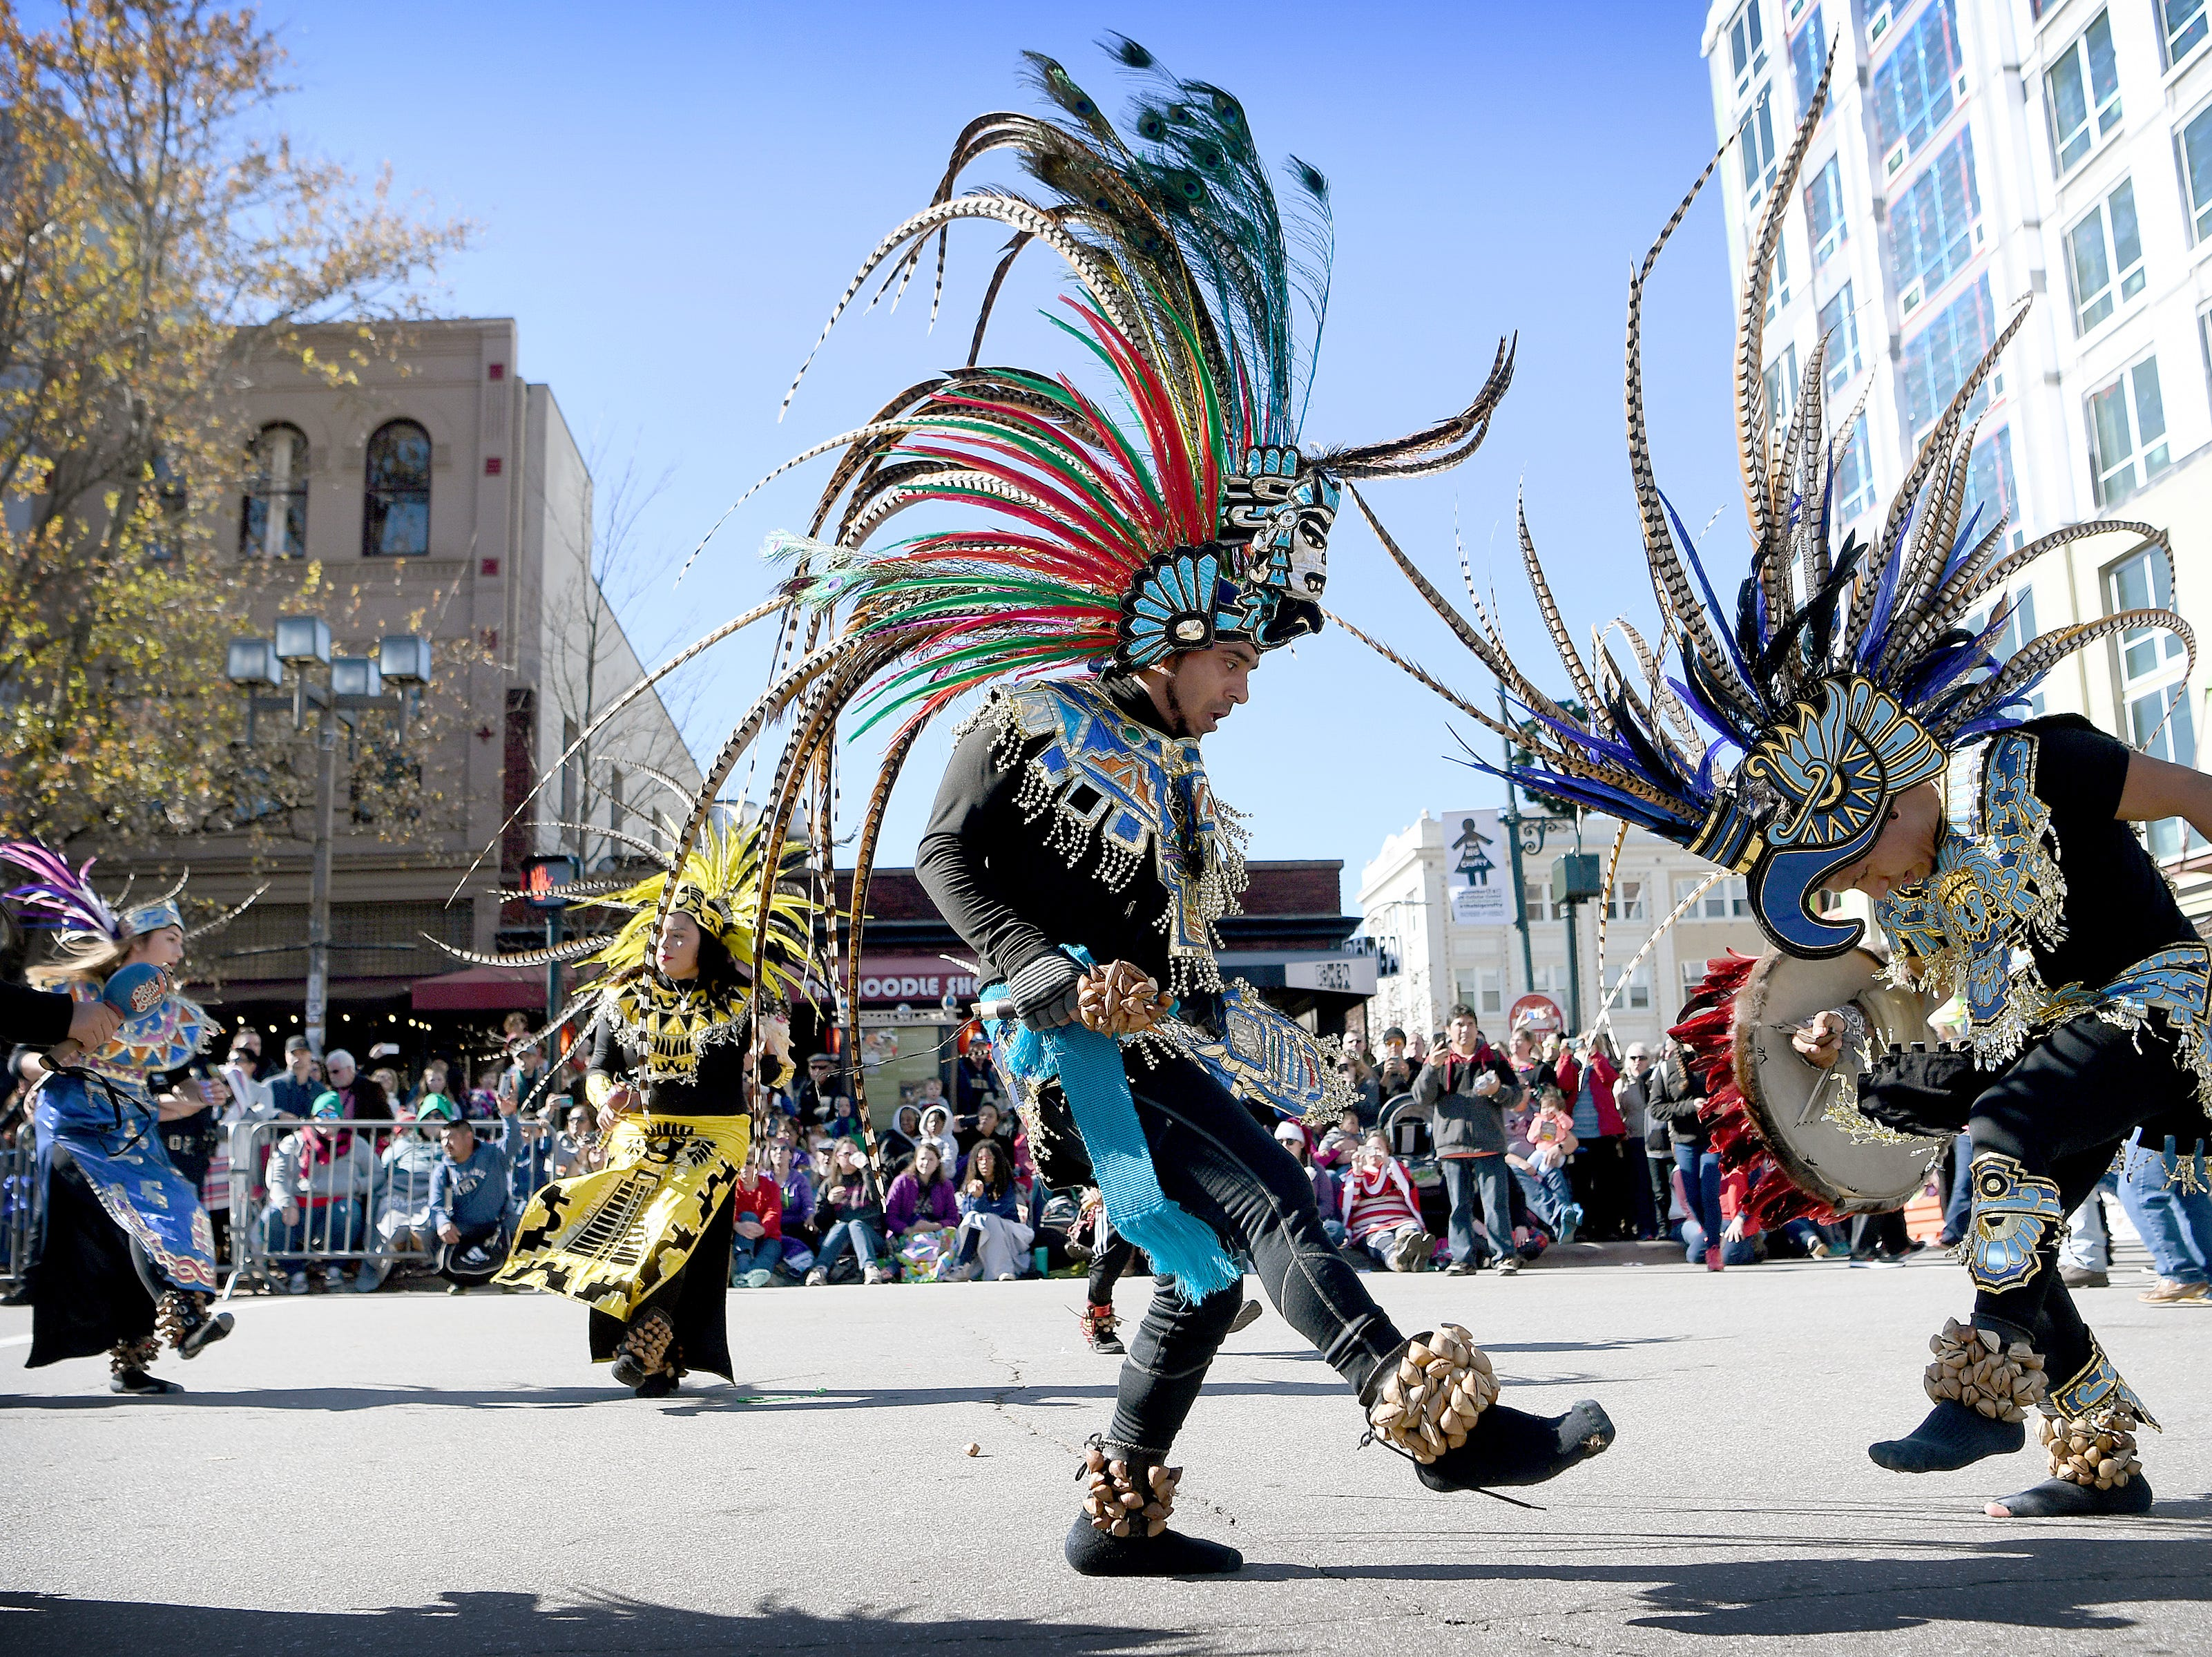 Dancers with Grupa de Danza Guadalupana de Asheville perform for the judges at the corner of Biltmore and Patton Avenues during the 2018 Asheville Holiday Parade on Nov. 17, 2018. More than 100 entries walked through the streets lined with spectators in the parade this year.